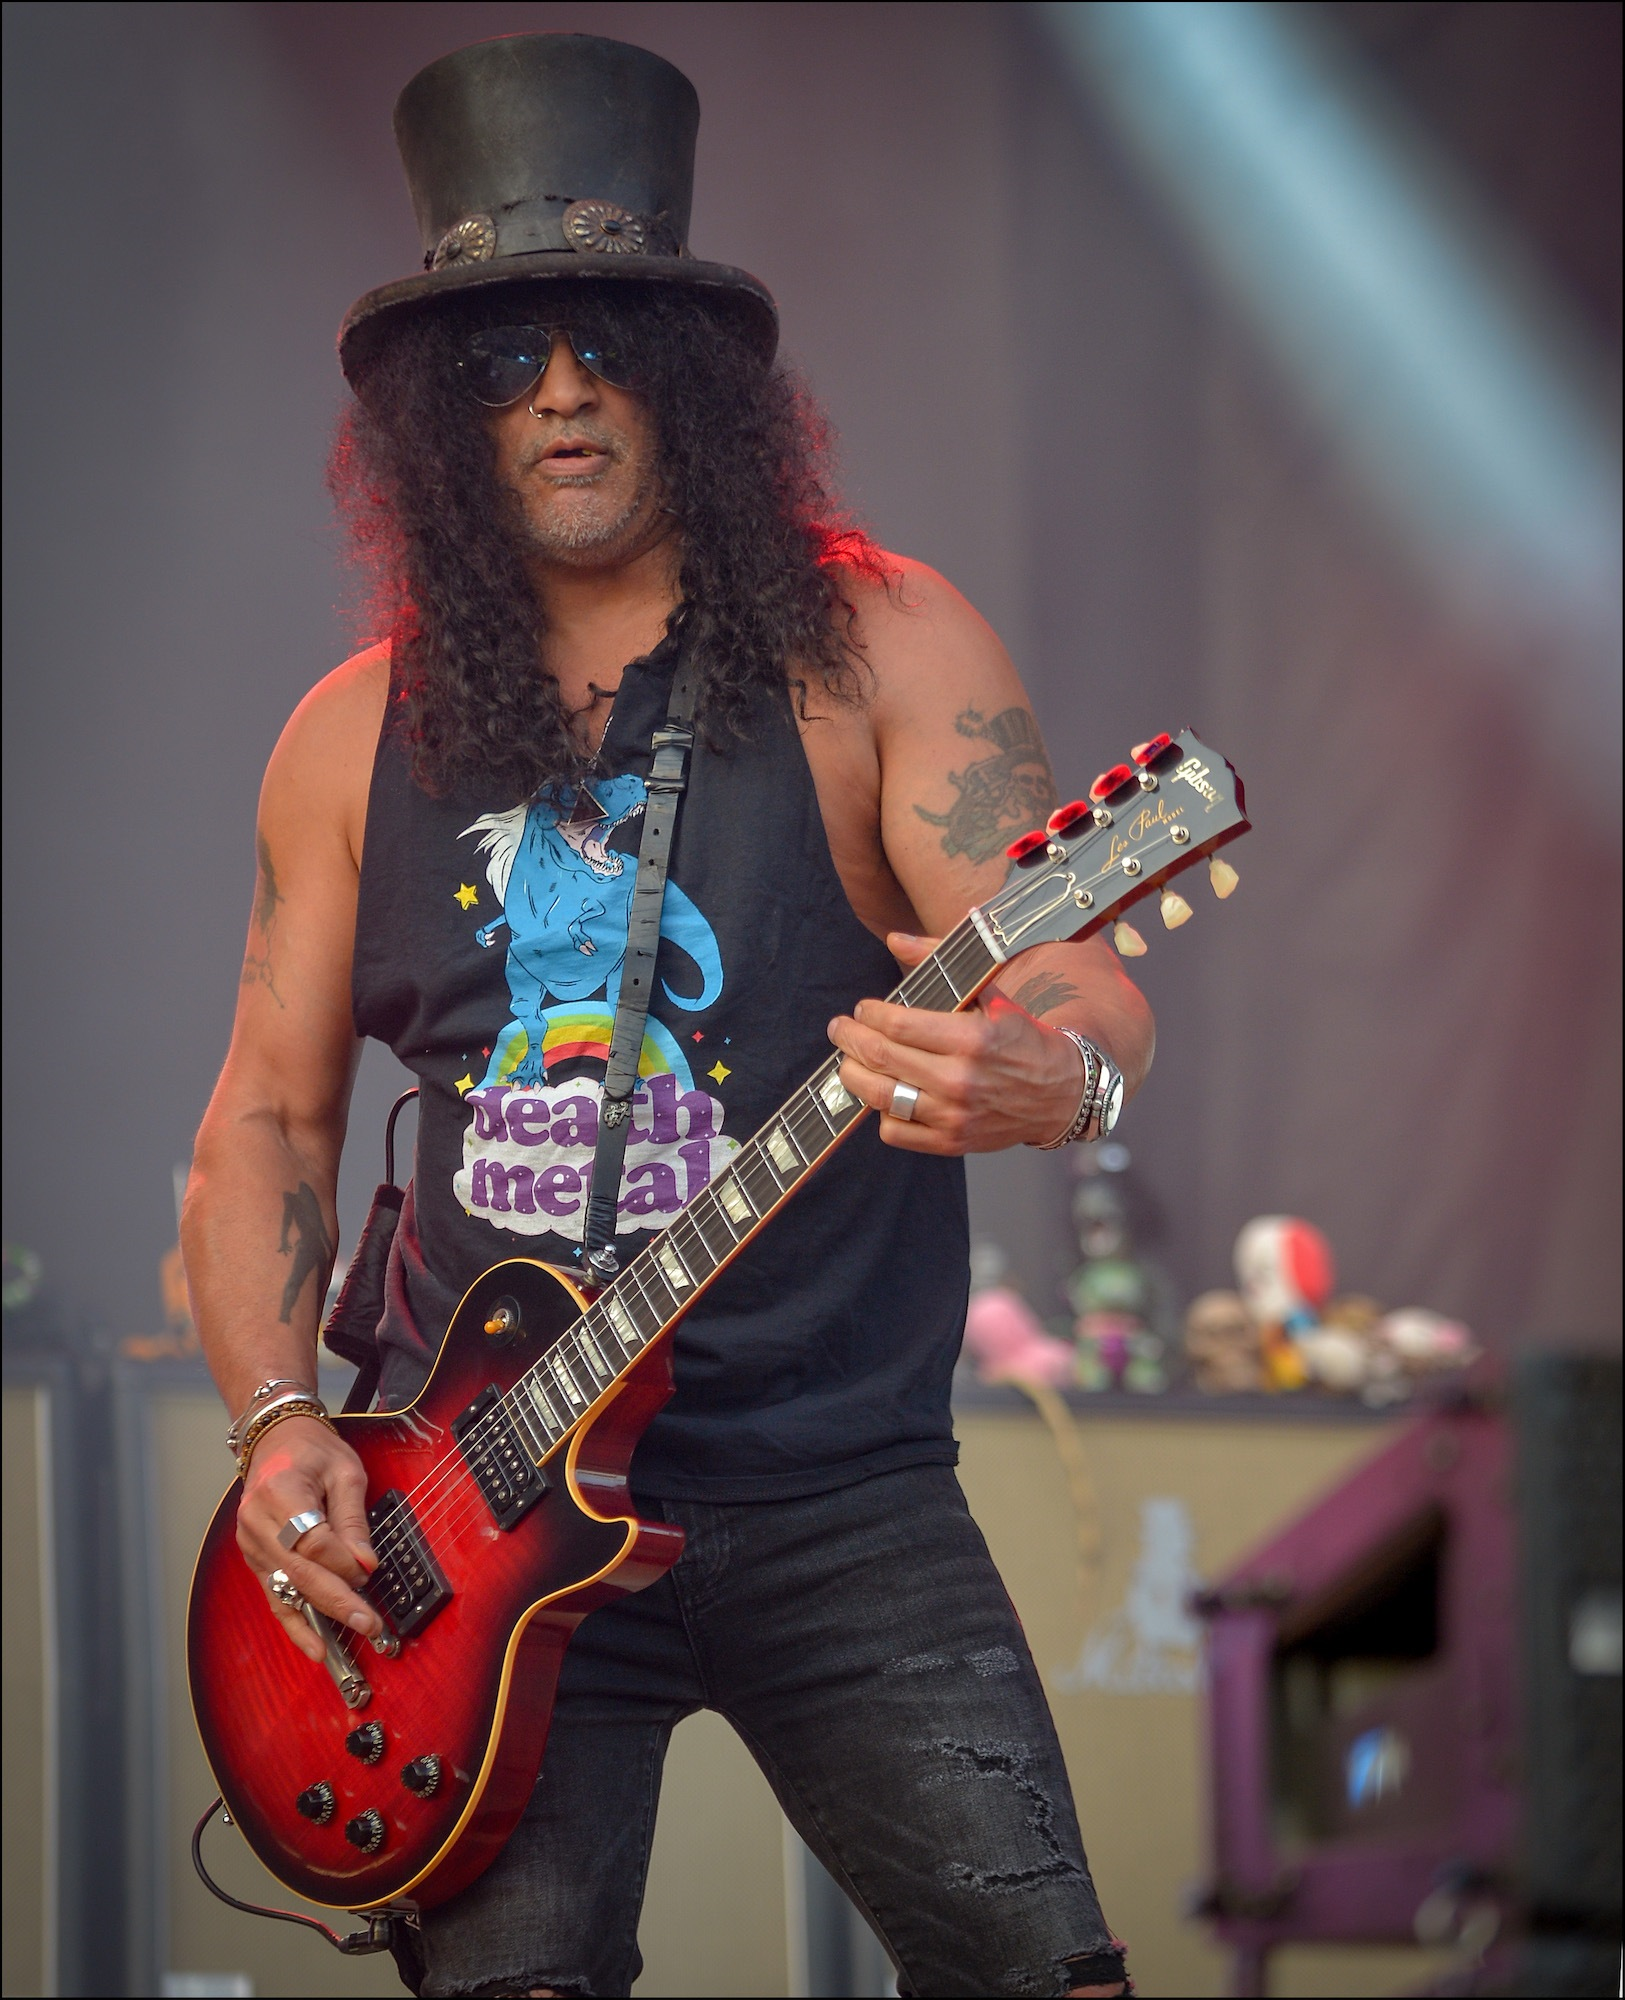 SLASH Featuring Myles Kennedy And The Conspirators Live at Lollapalooza [GALLERY] 9